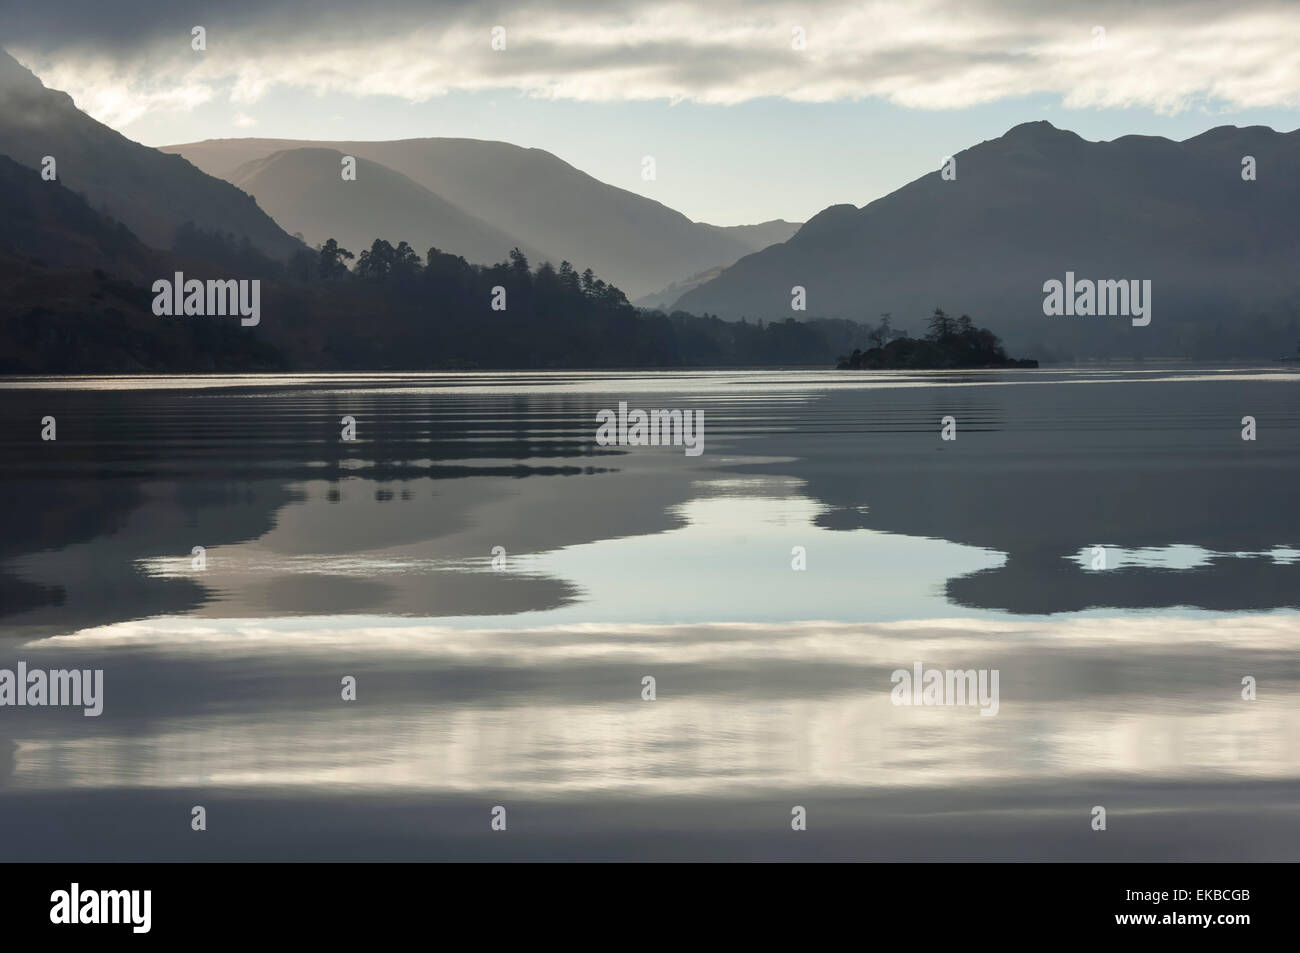 Ullswater, petite île en novembre, Parc National de Lake District, Cumbria, Angleterre, Royaume-Uni, Europe Photo Stock